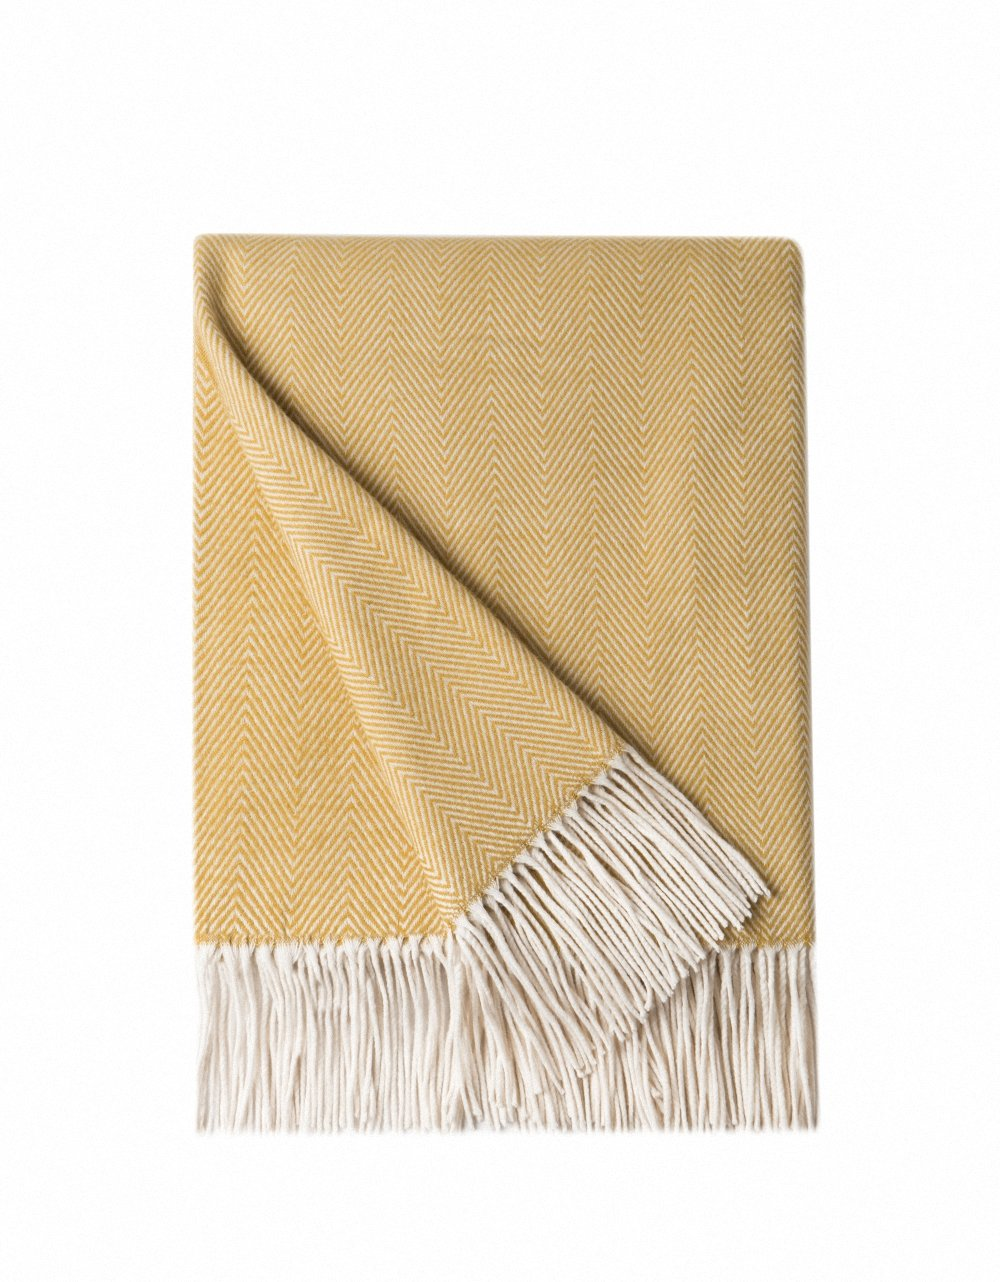 Farmhouse Fall Decor Ideas - Herringbone cashmere blanket in orange, blue, and yellow